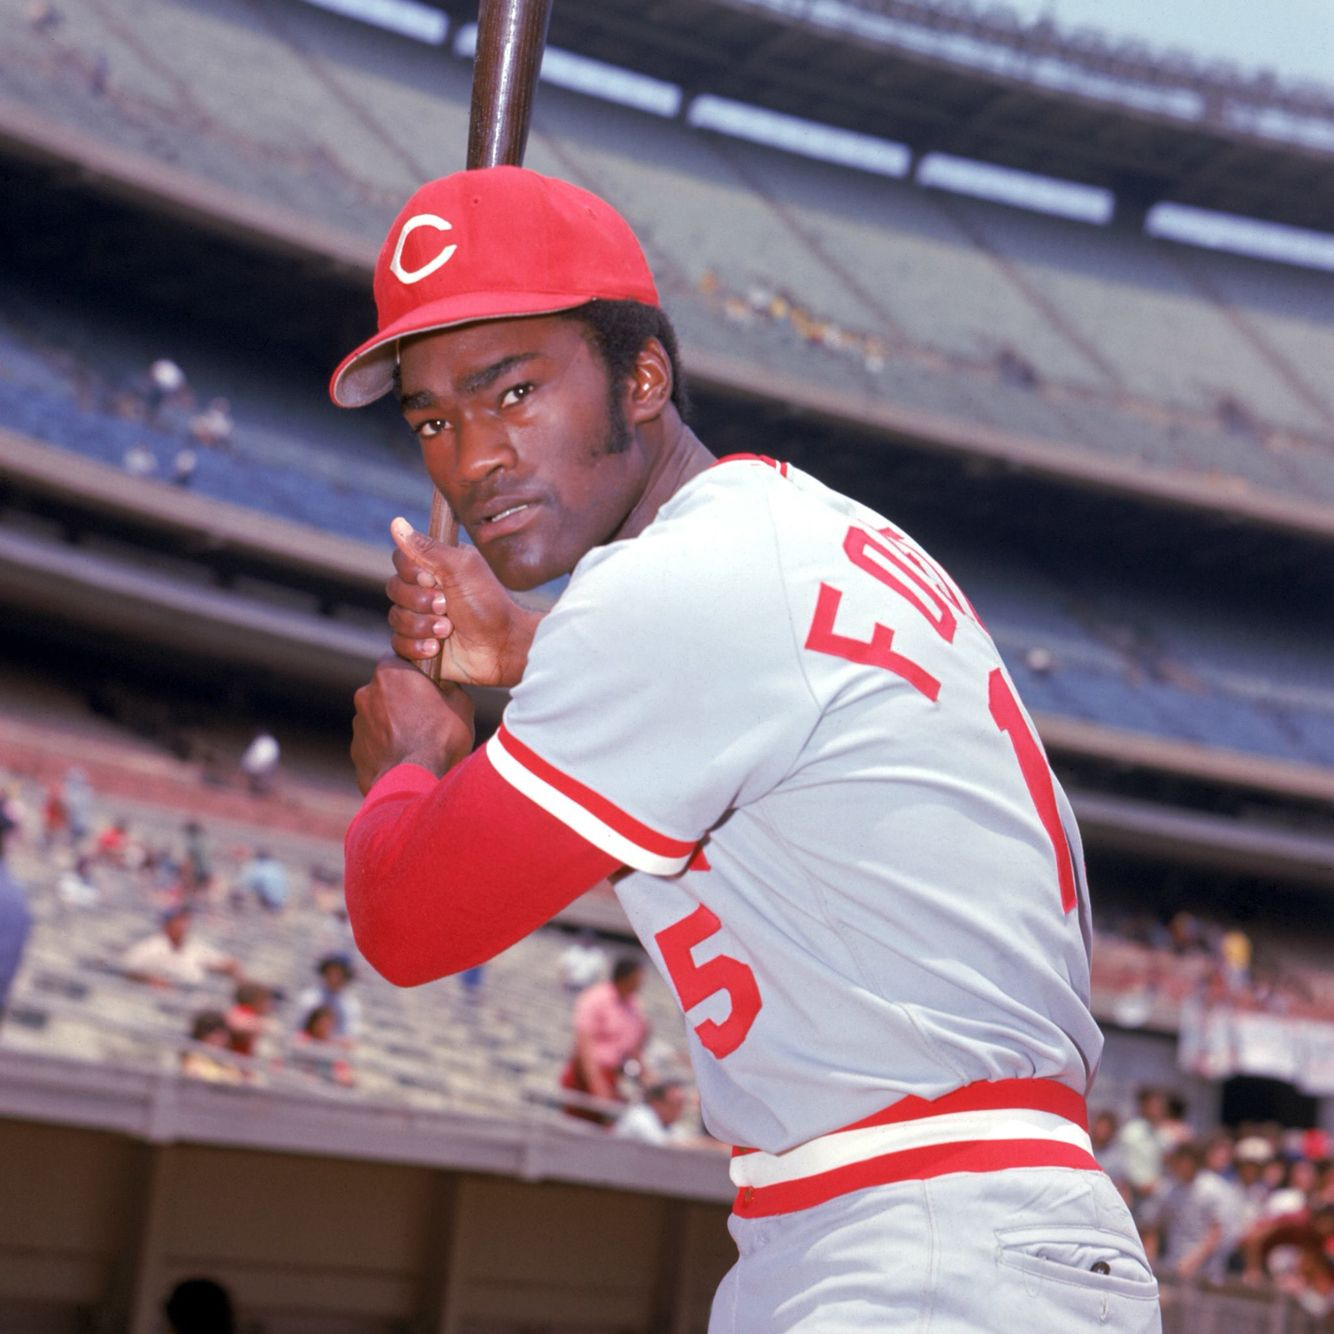 FCHS Baseball Presents: An Evening with George Foster